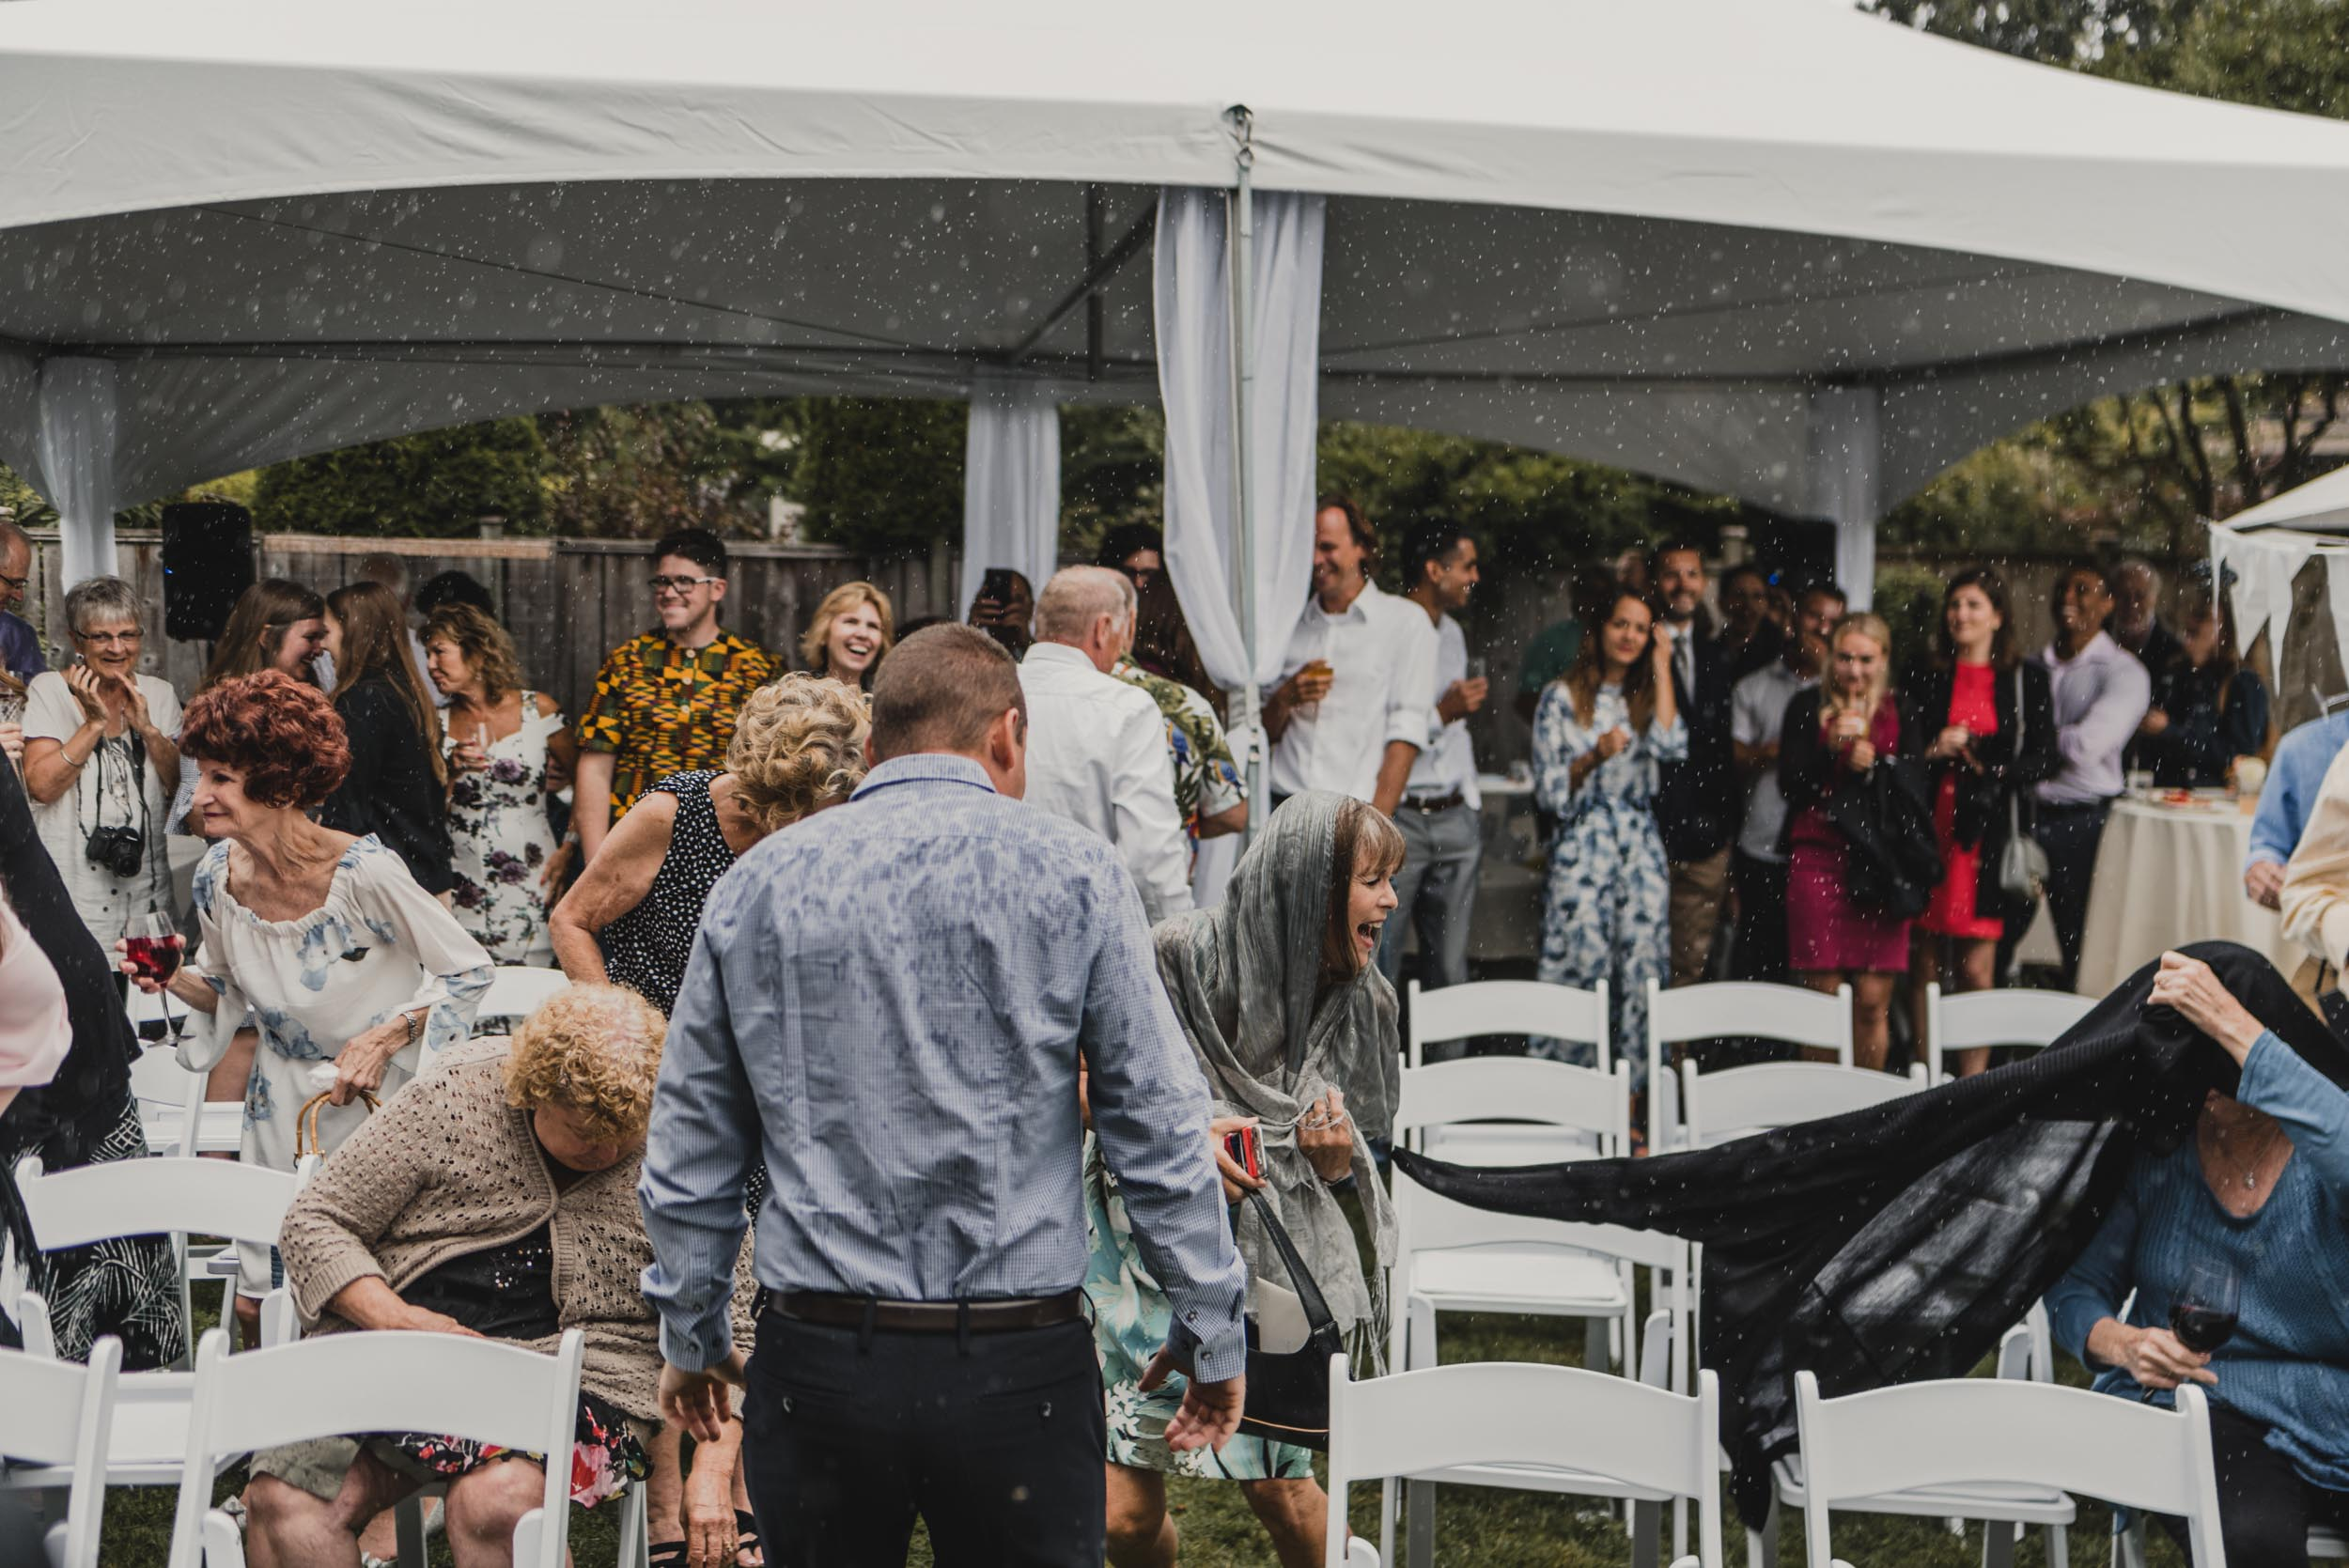 Wedding guests running from rain